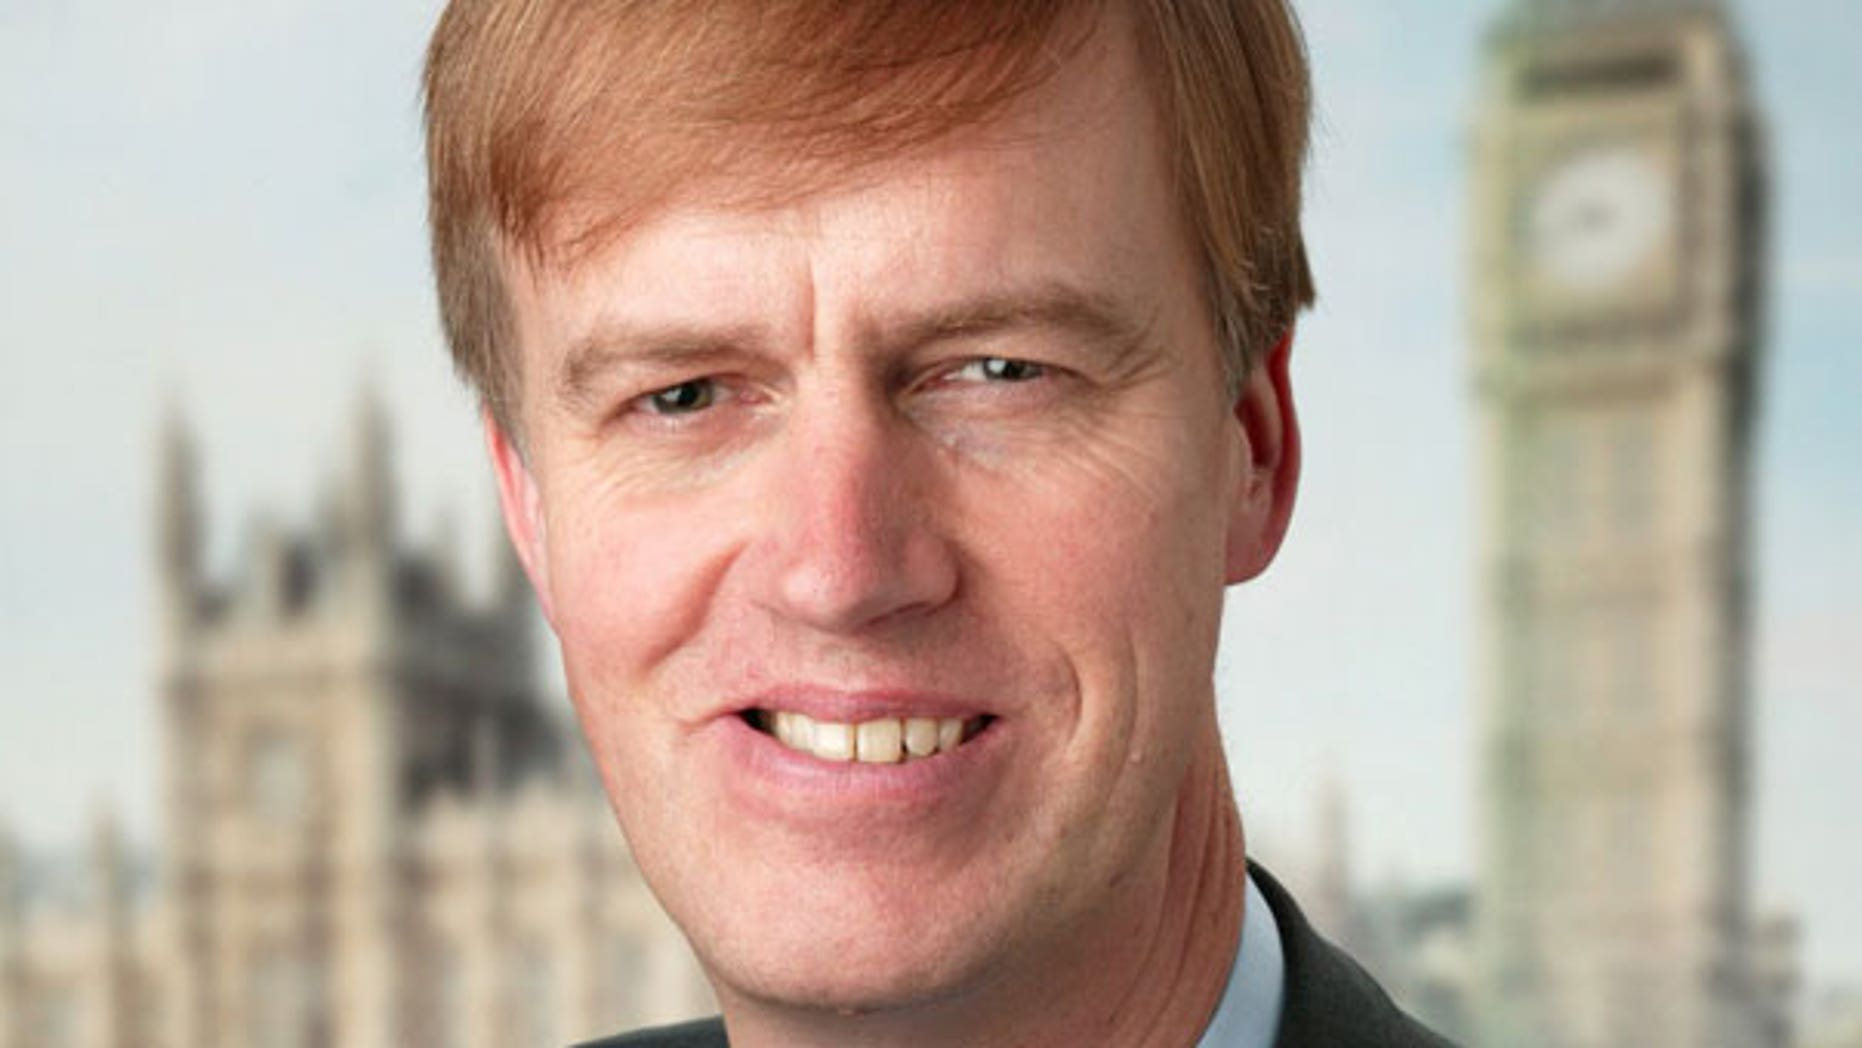 British MP and former Financial Secretary Stephen Timms was stabbed by a constituent Friday.